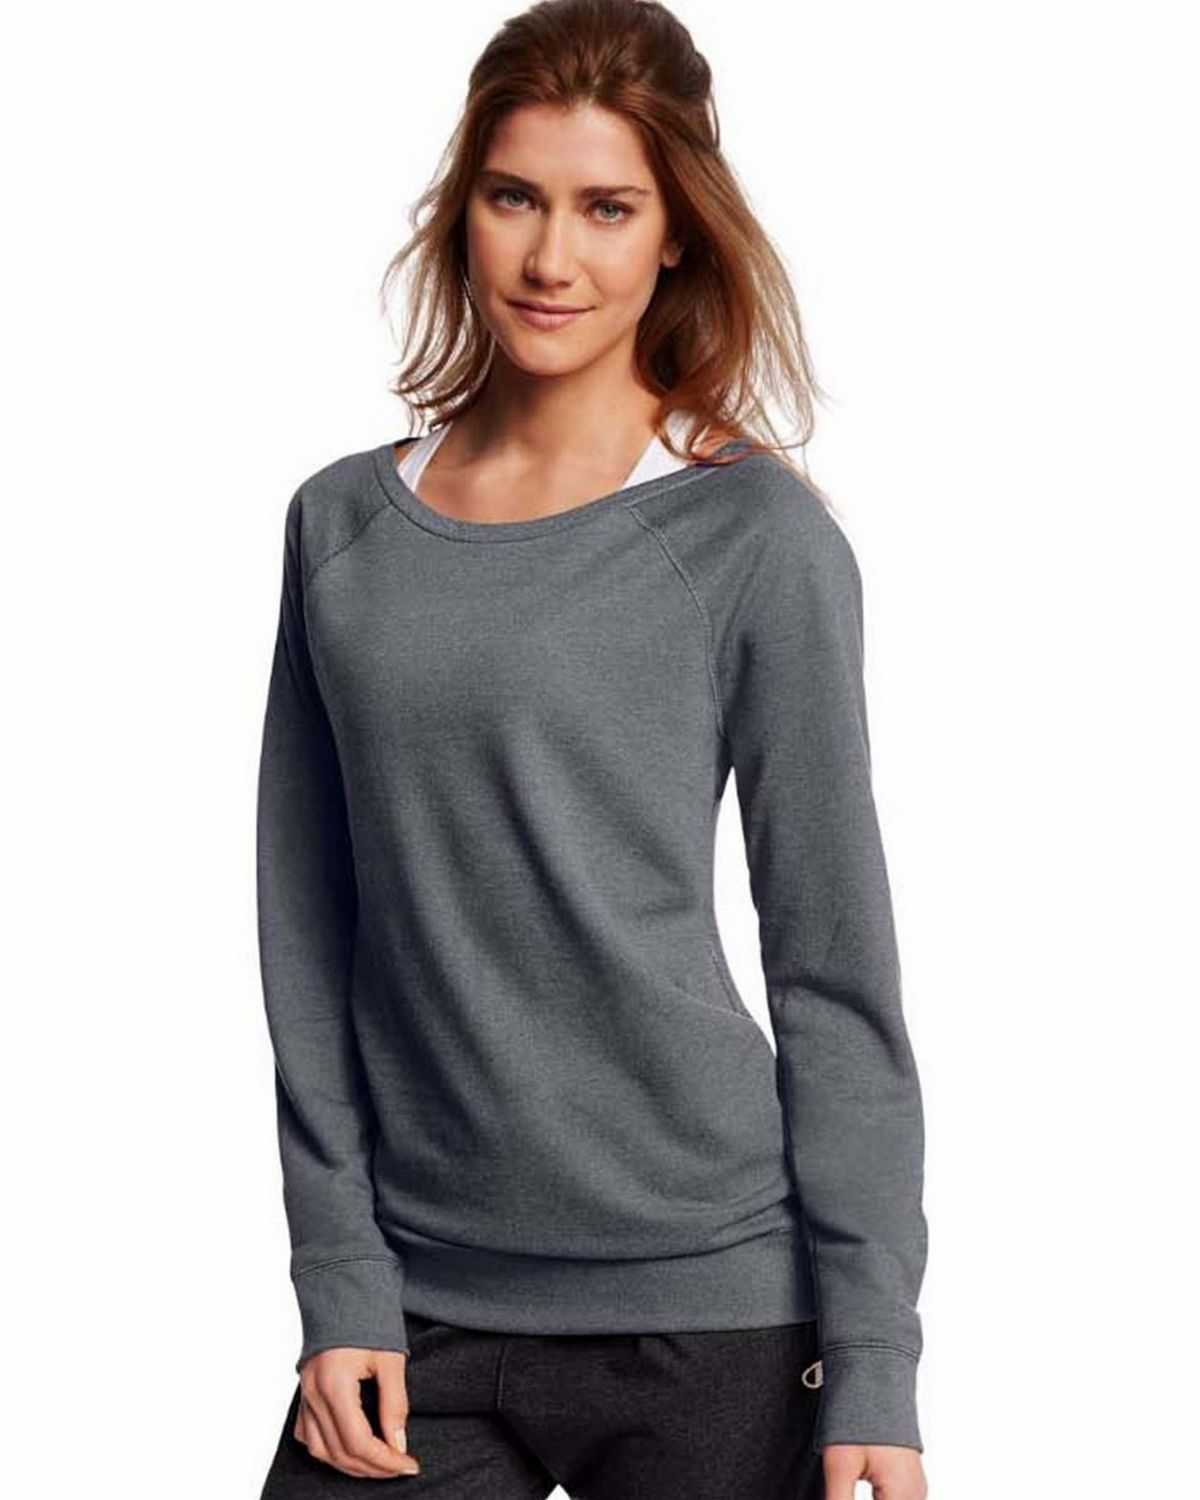 Champion W0943 French Terry Top - Granite Heather - L W0943